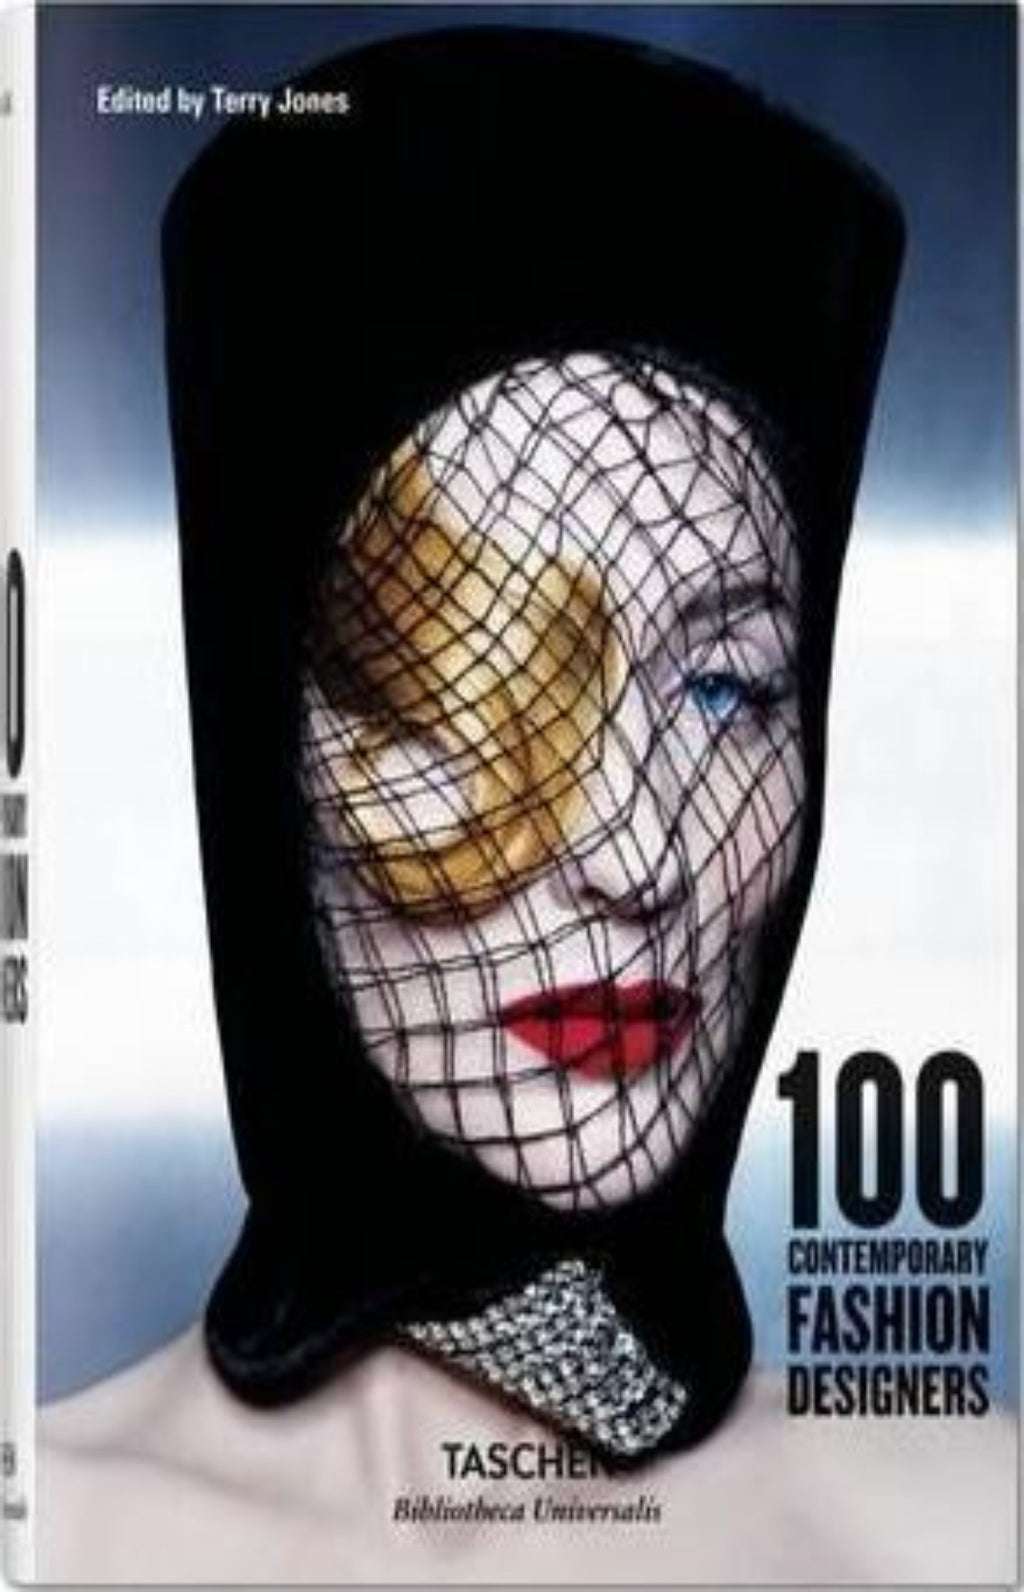 100 Contemporary Fashion Designers - Bibliotheca Universalis